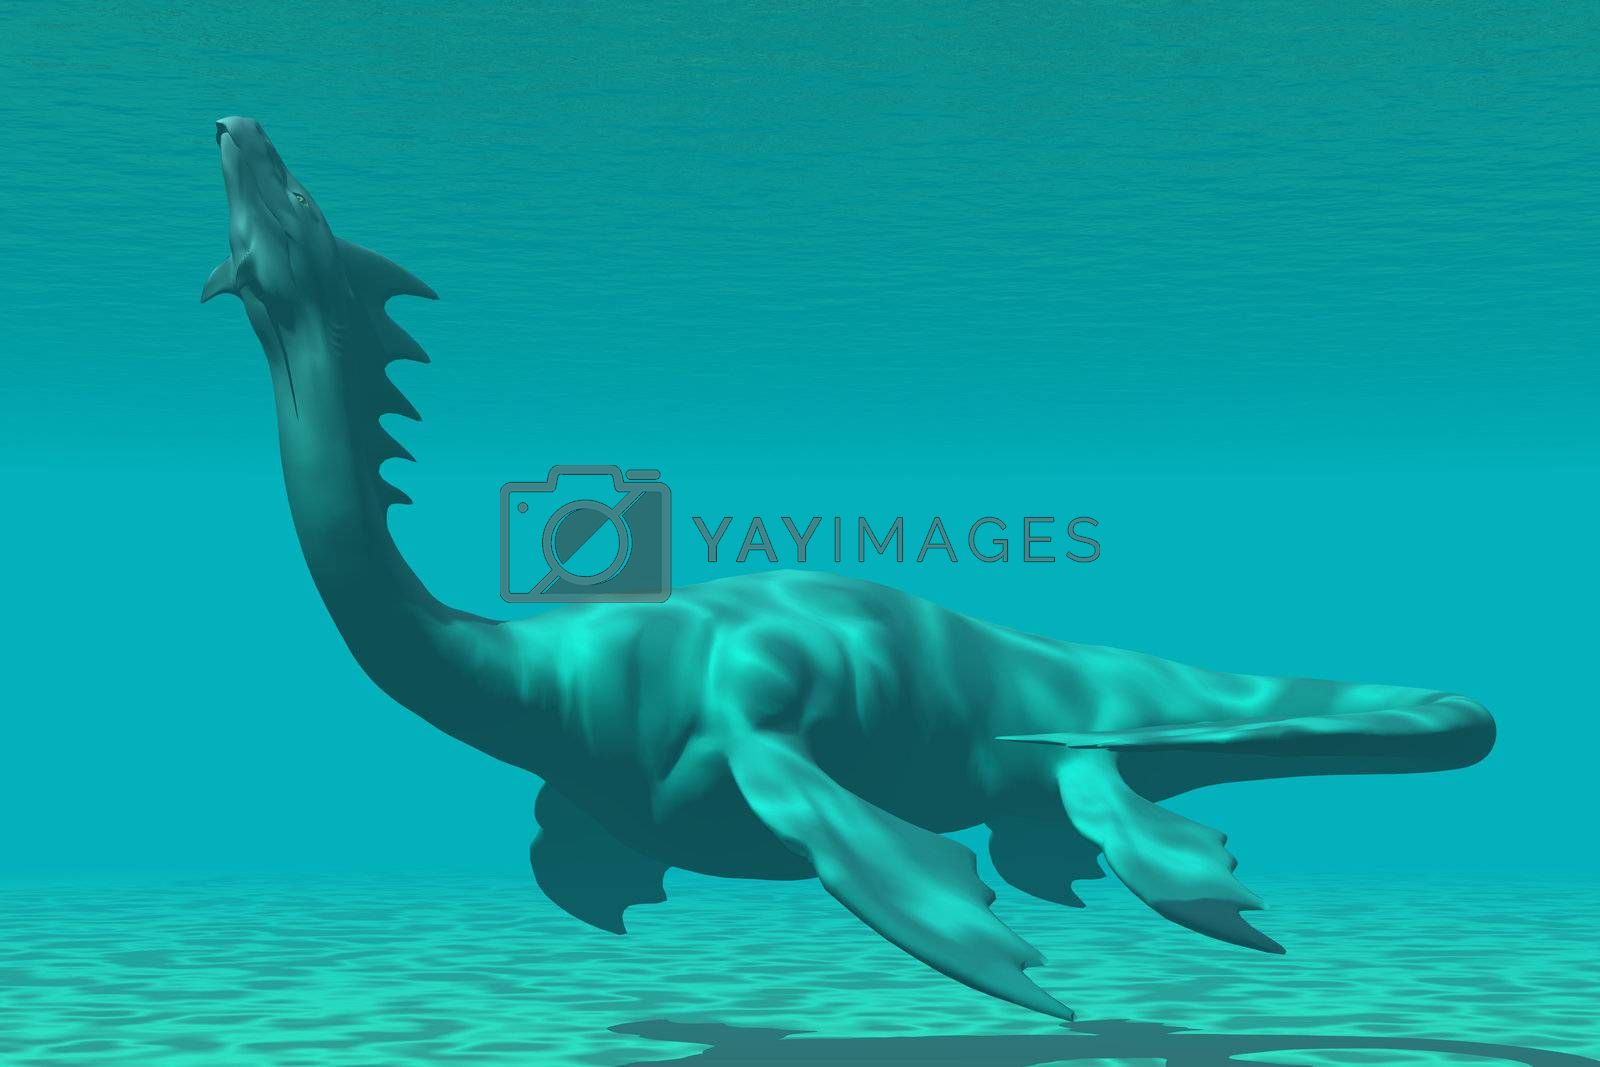 A mythical sea dragon creature is reminiscent of the dinosaur called Plesiosaurus.